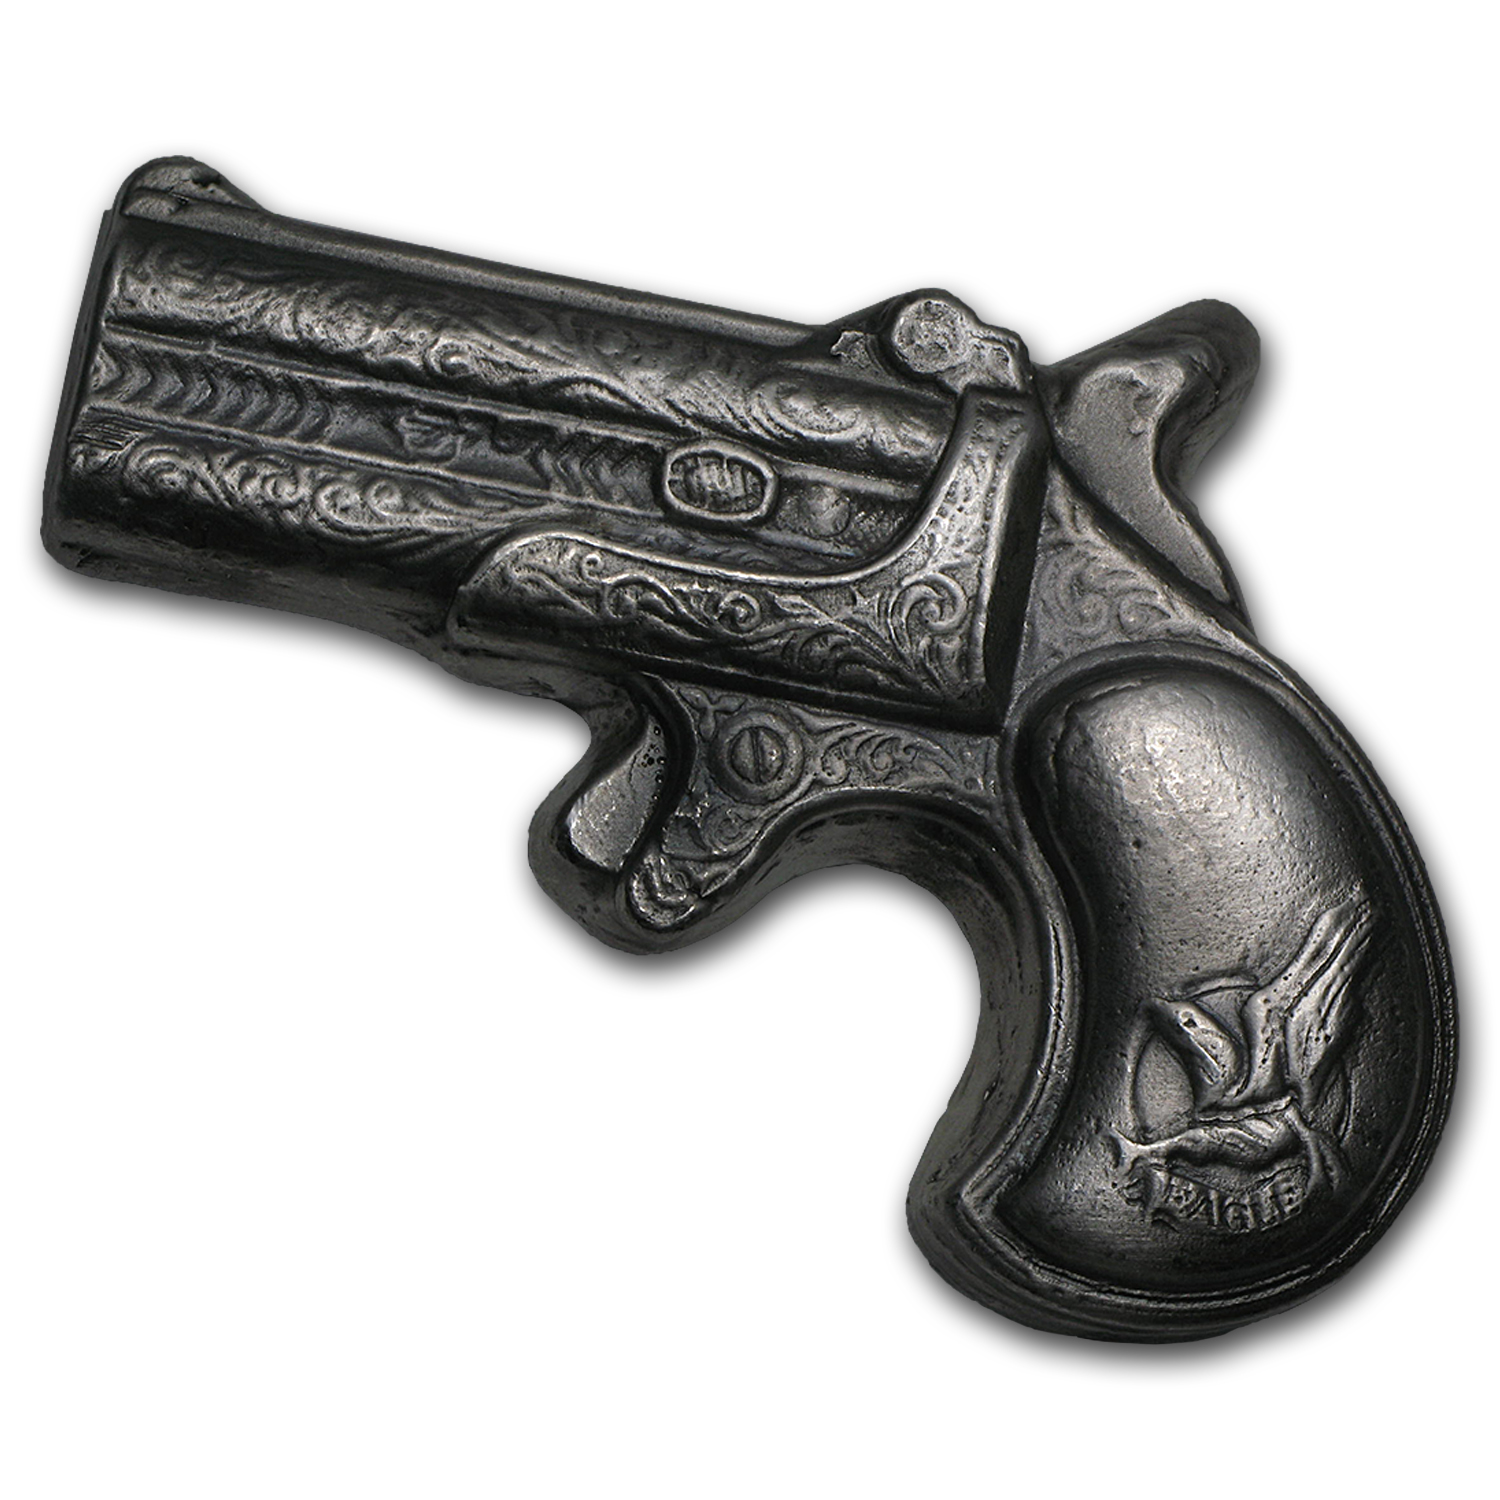 7 oz Silver Bar - Derringer Pistol